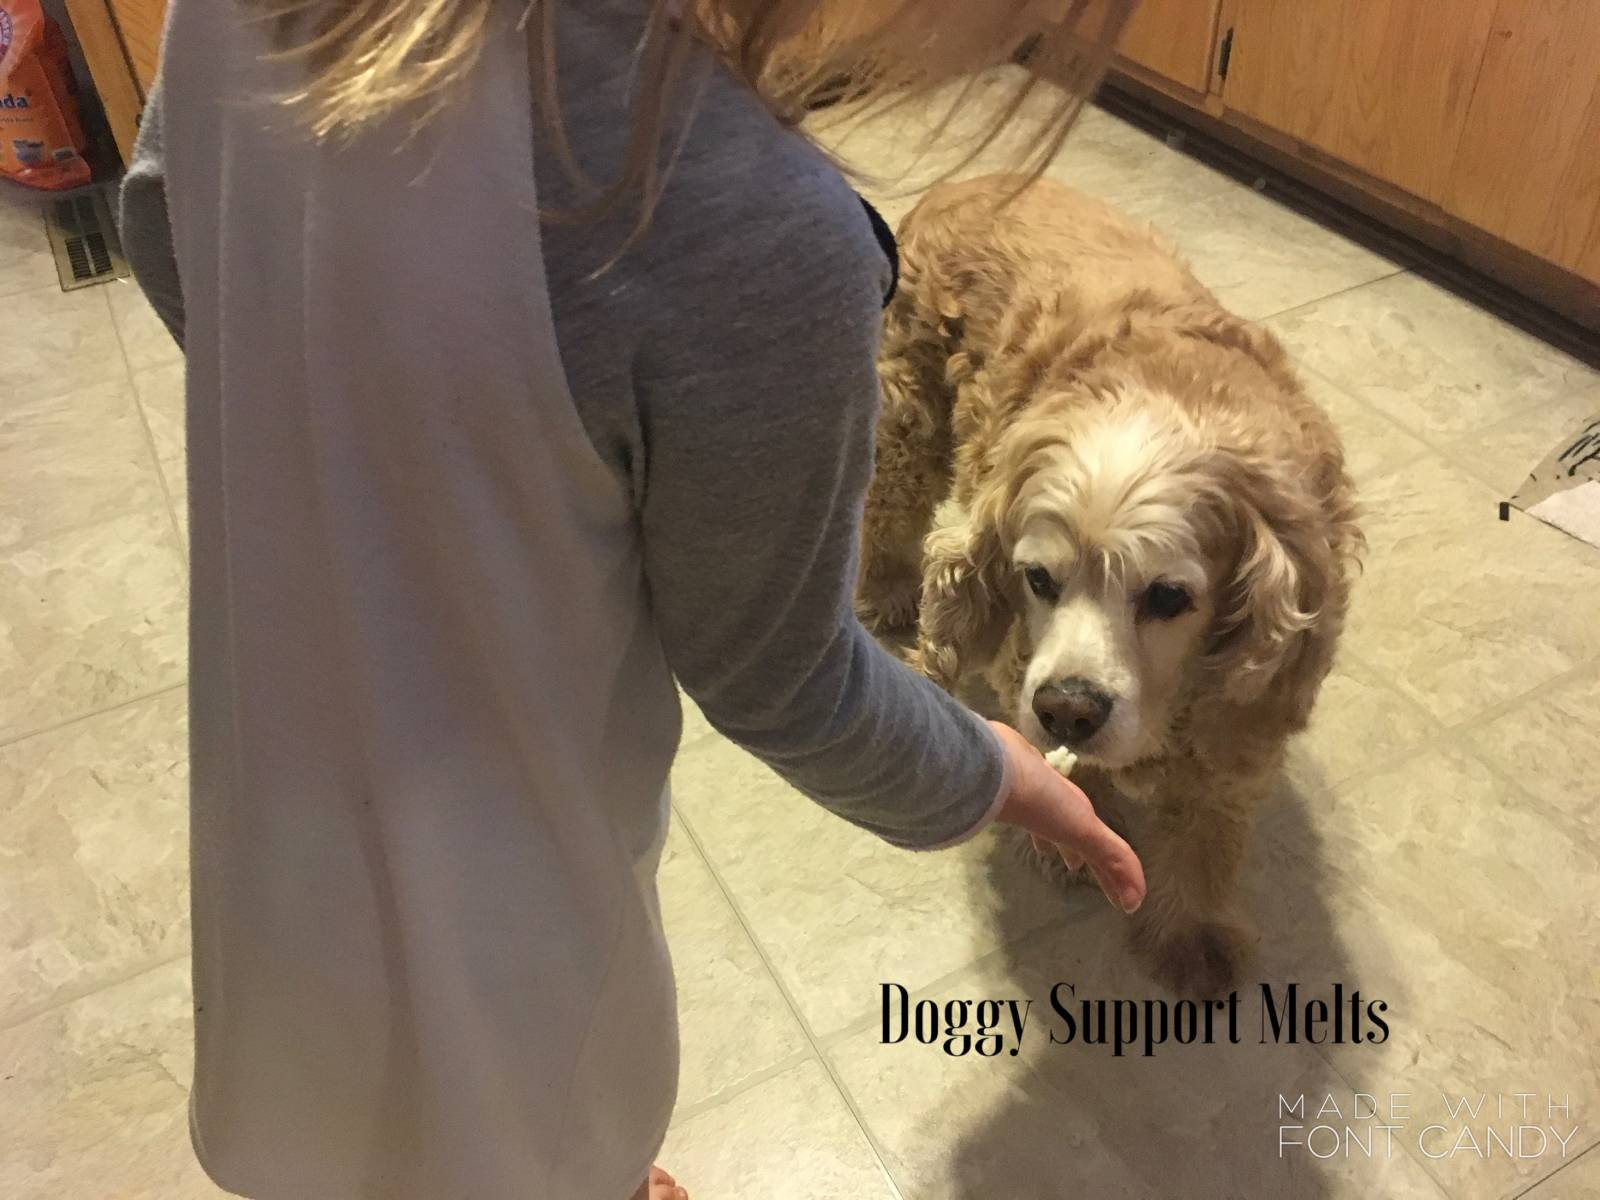 Doggy support melts